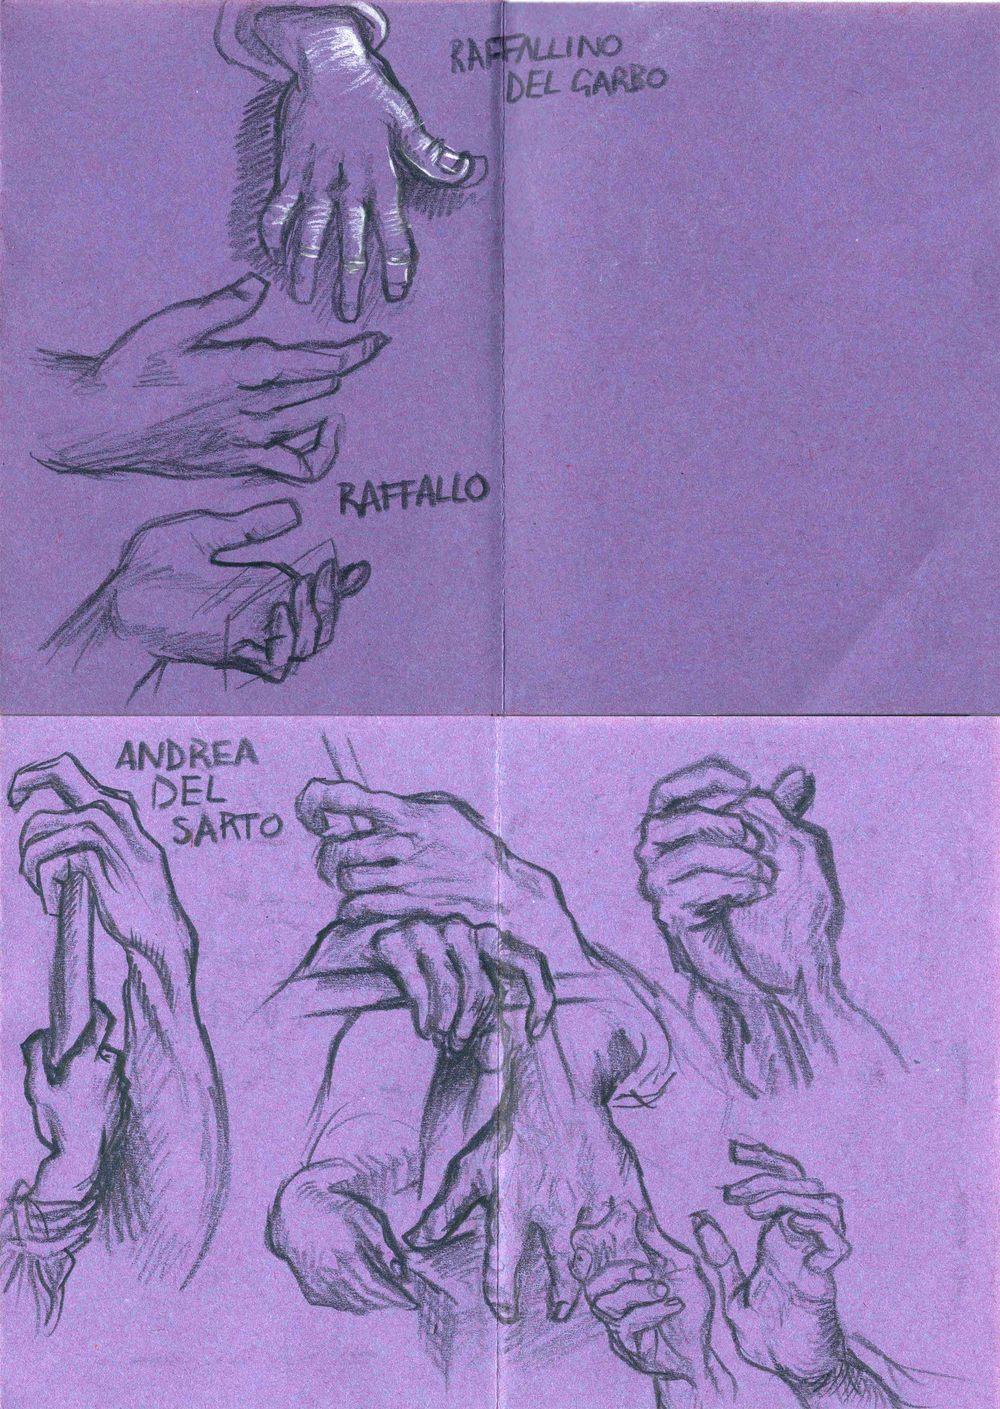 Study of hands from a book of masters